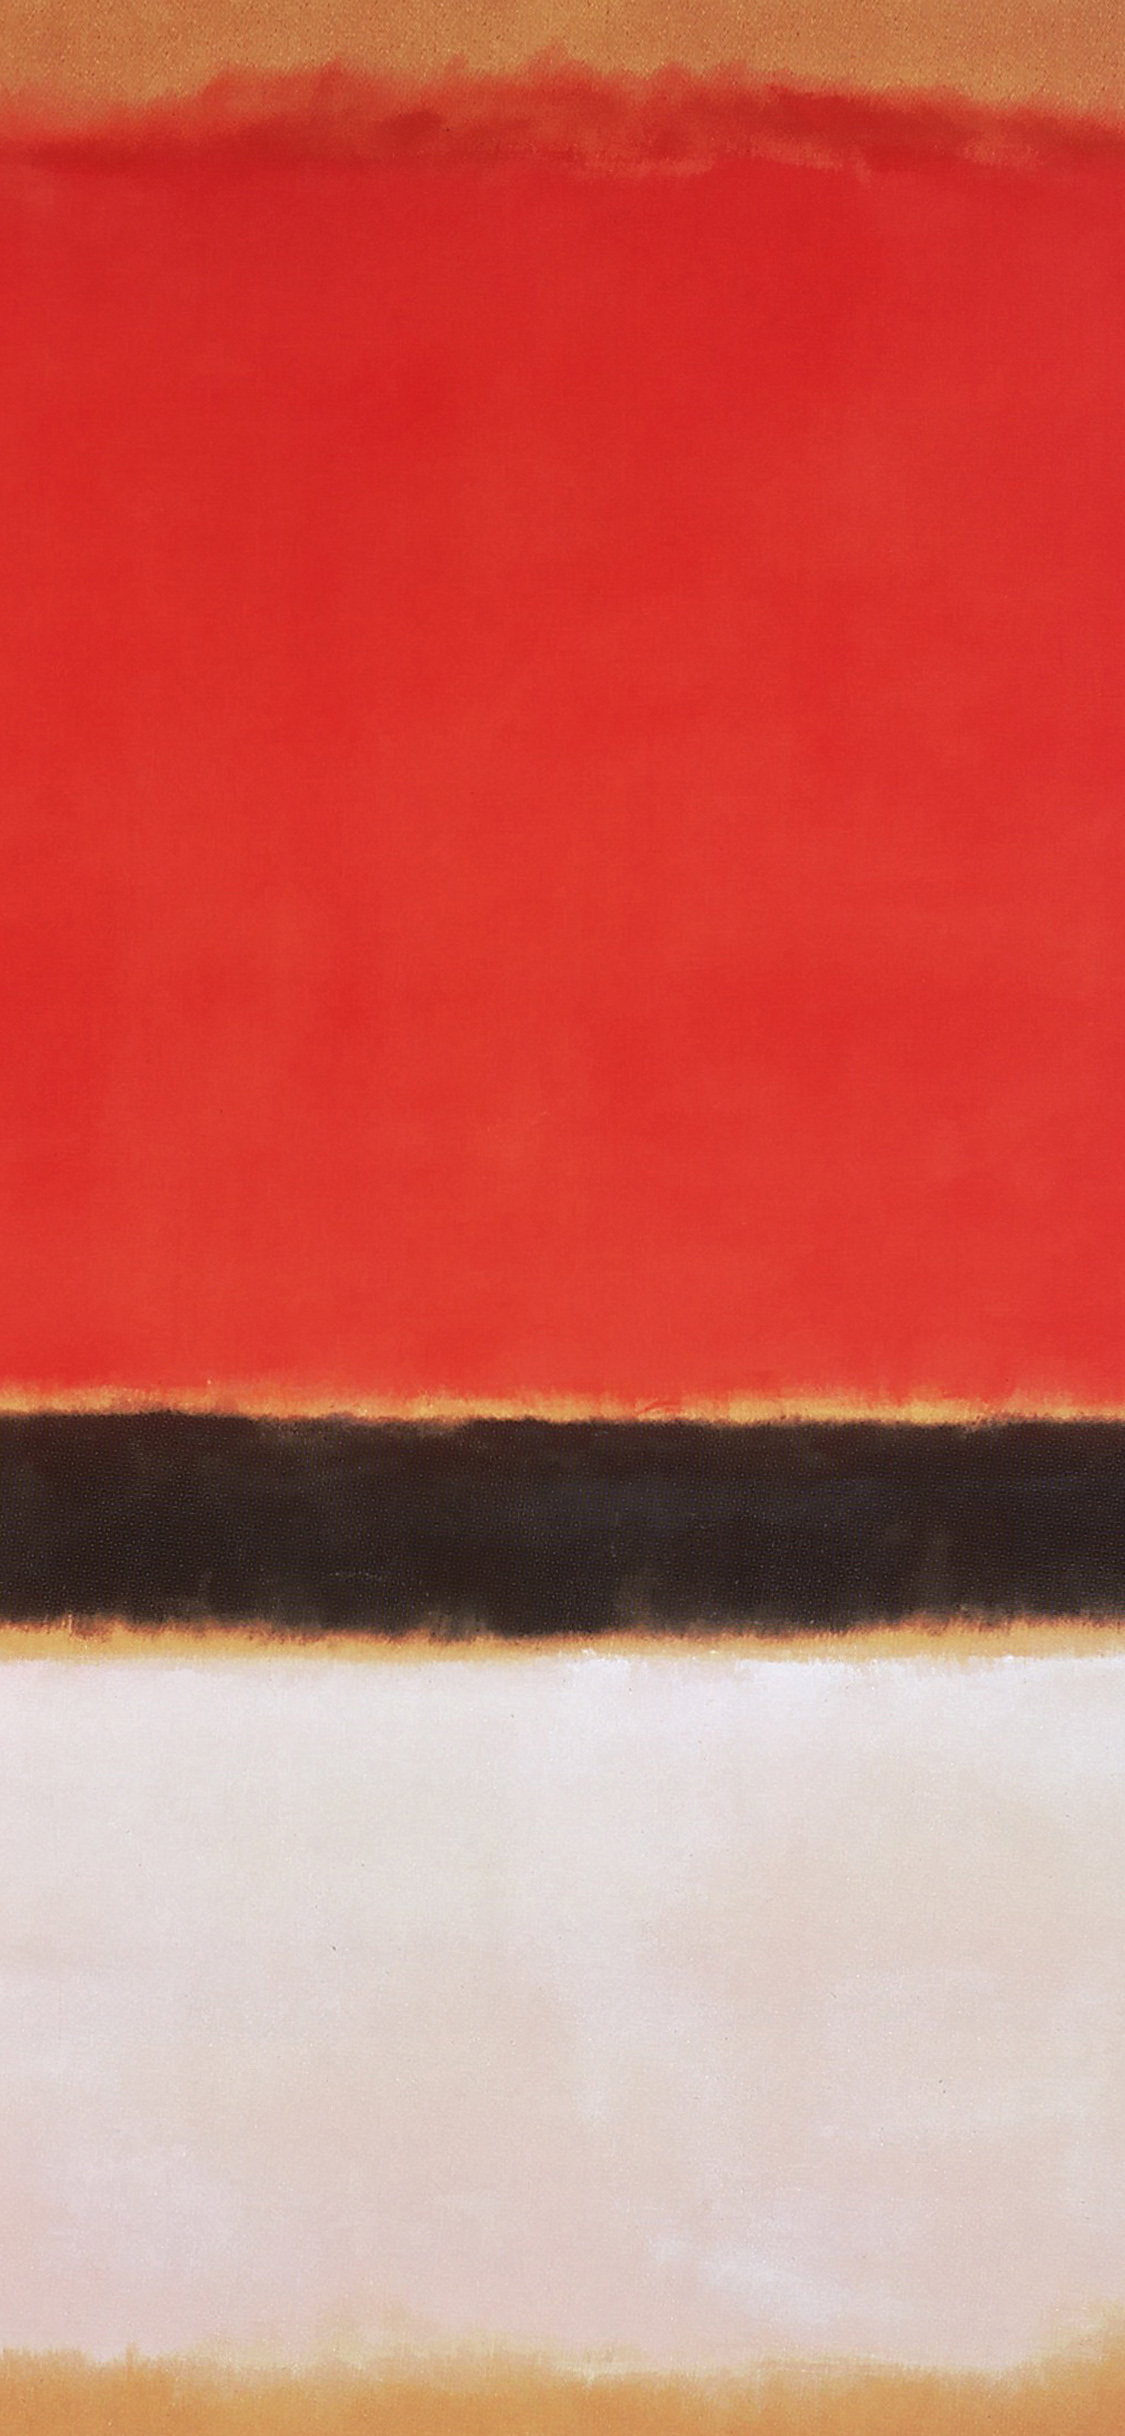 Papers Co Iphone Wallpaper Al67 Red Black White Rothko Mark